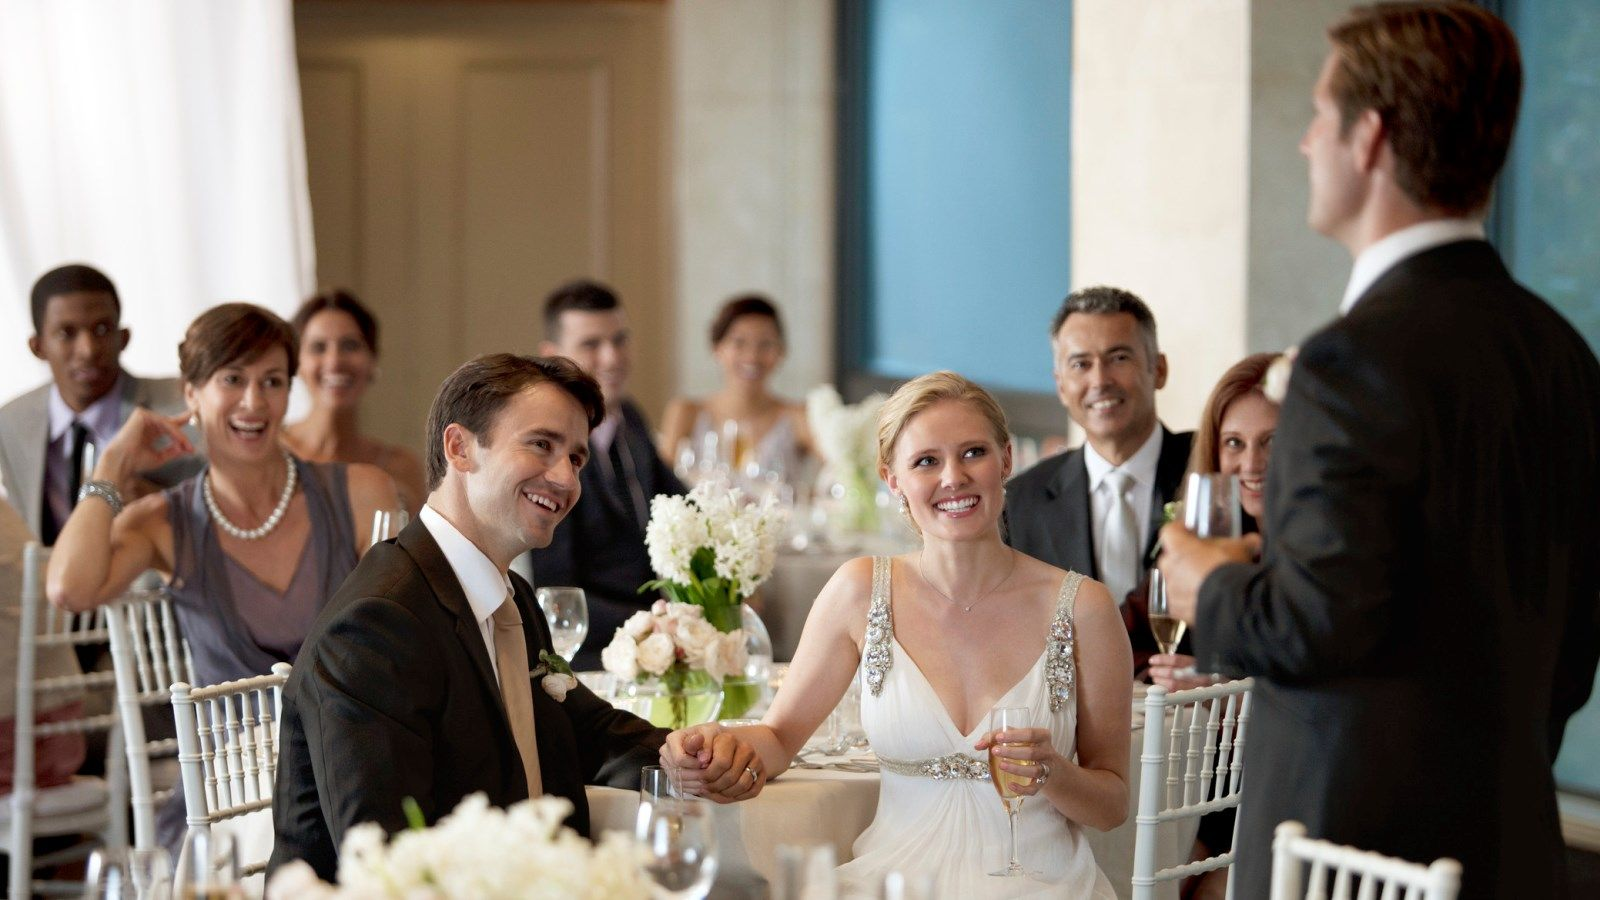 Chapel Hill Wedding Venues - Family Toast